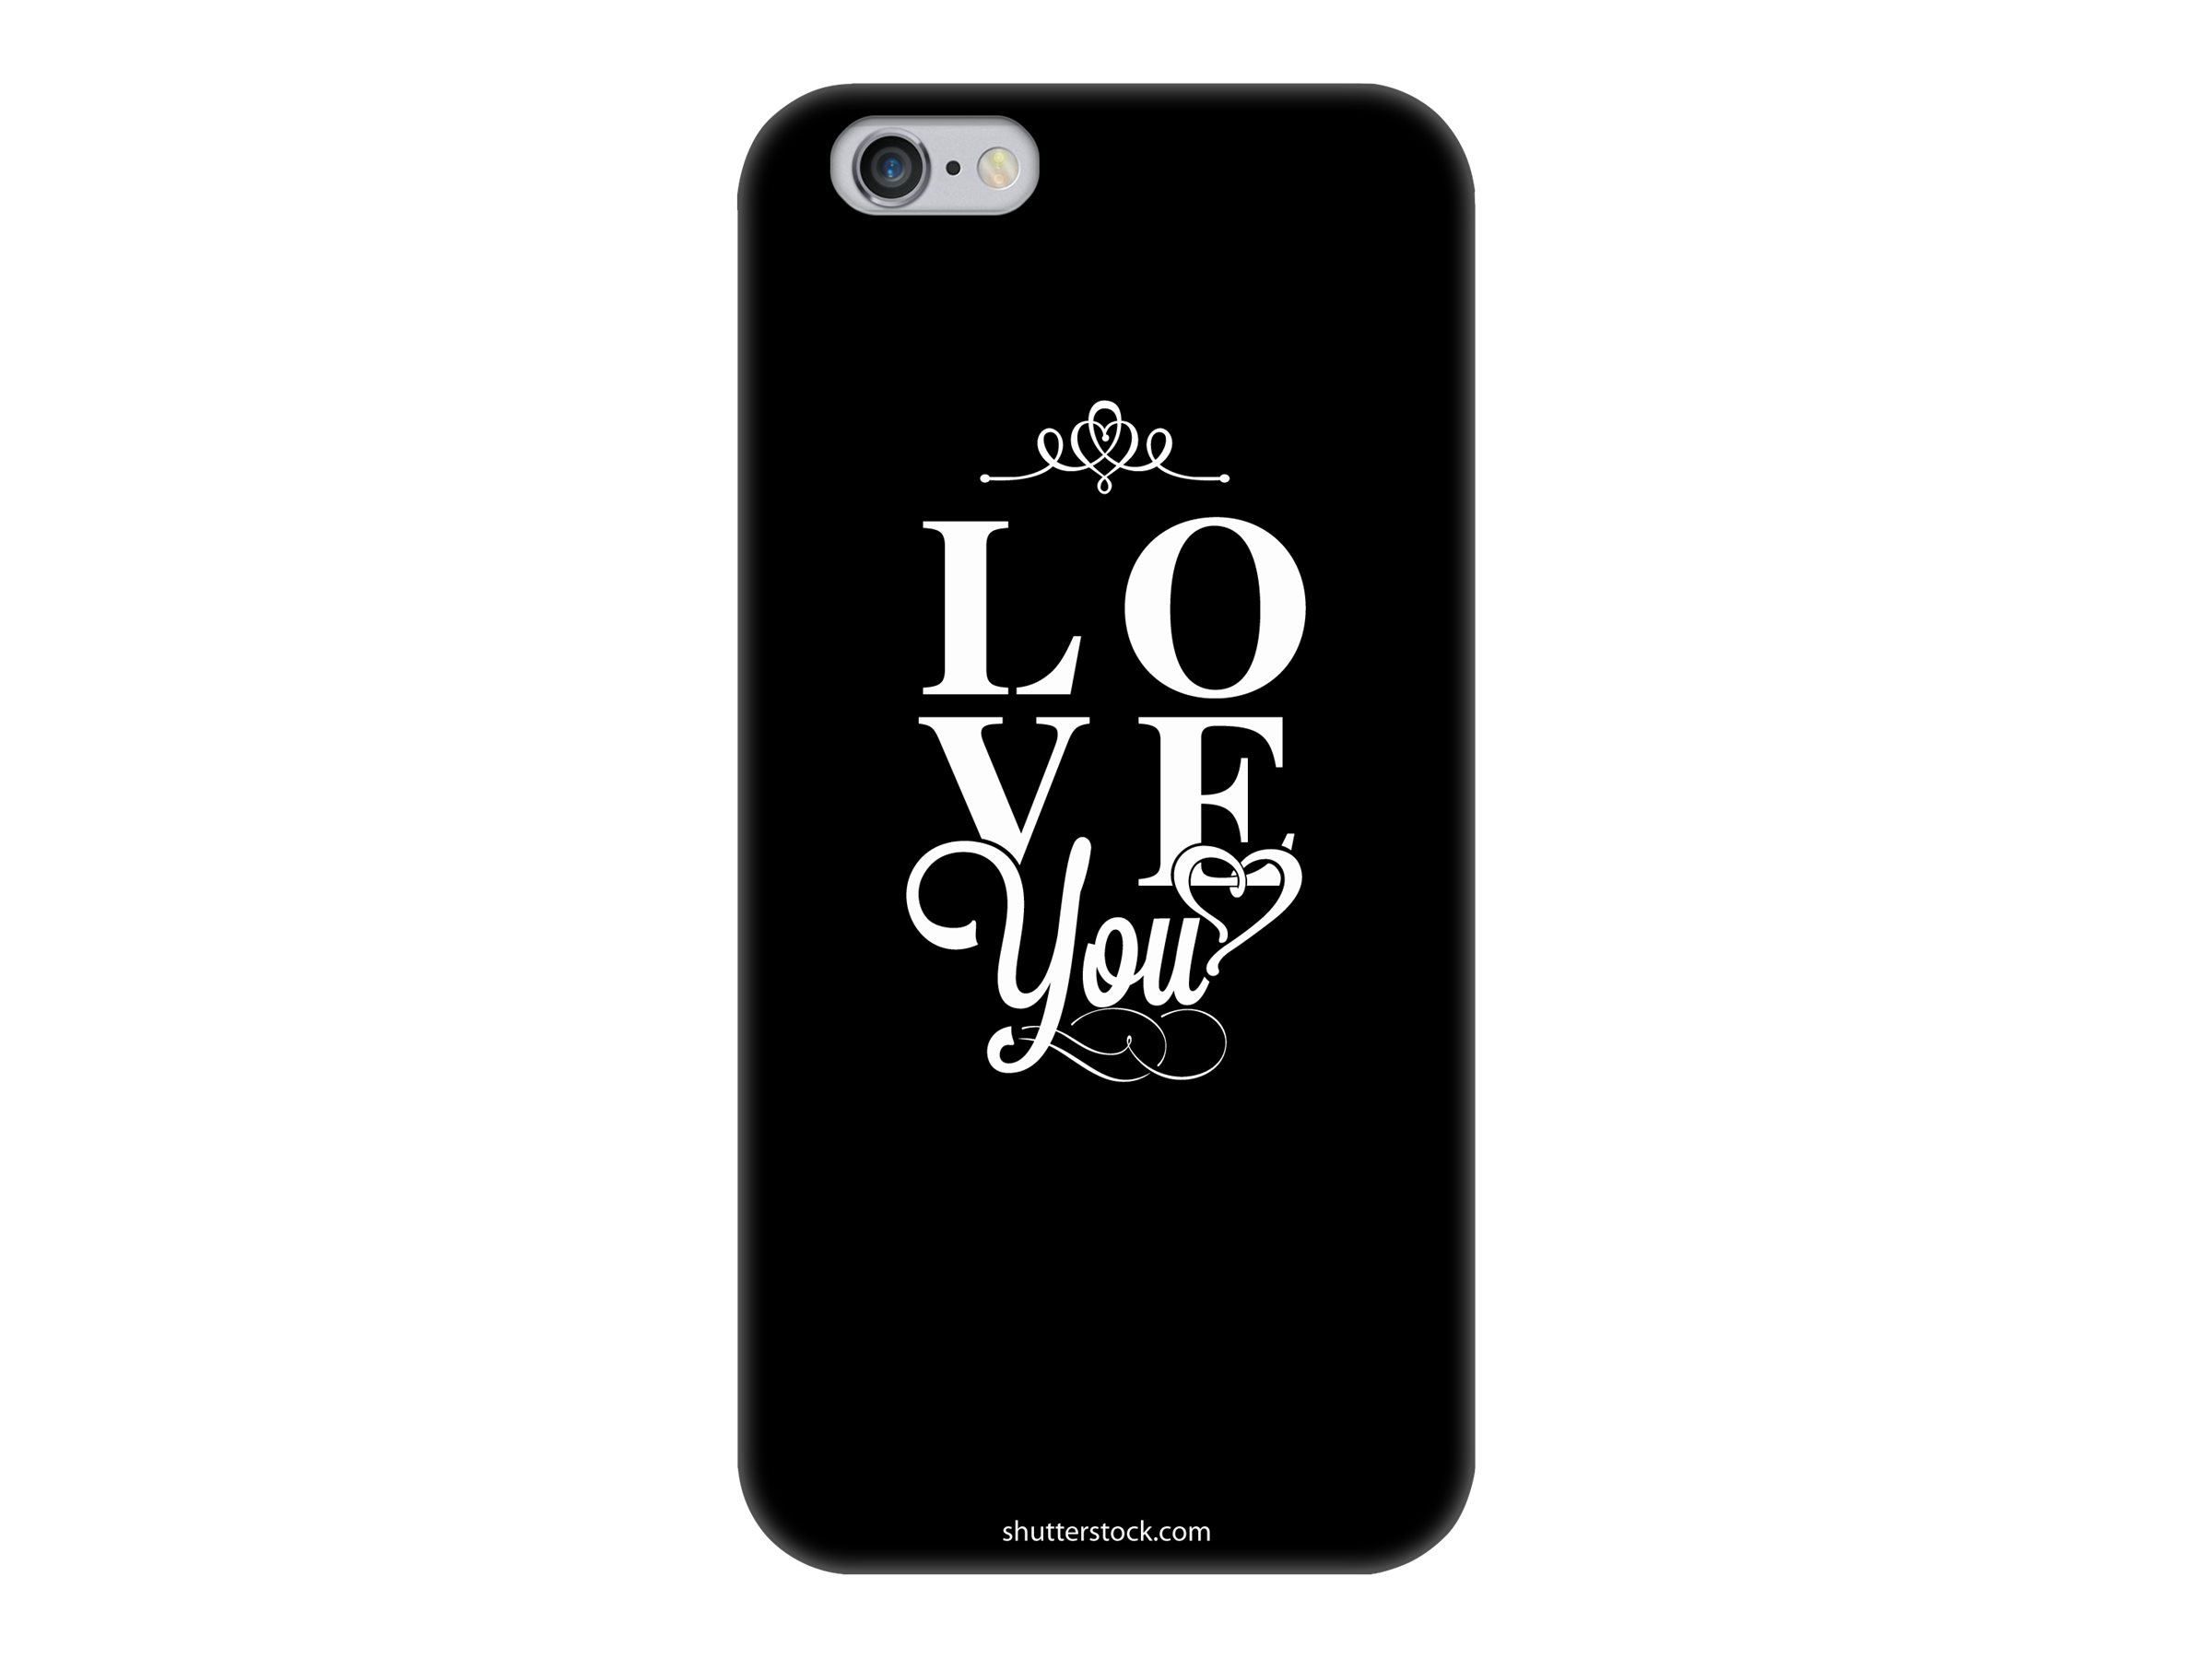 Muvit love you - Coque de protection pour iPhone 6 - noir, blanc